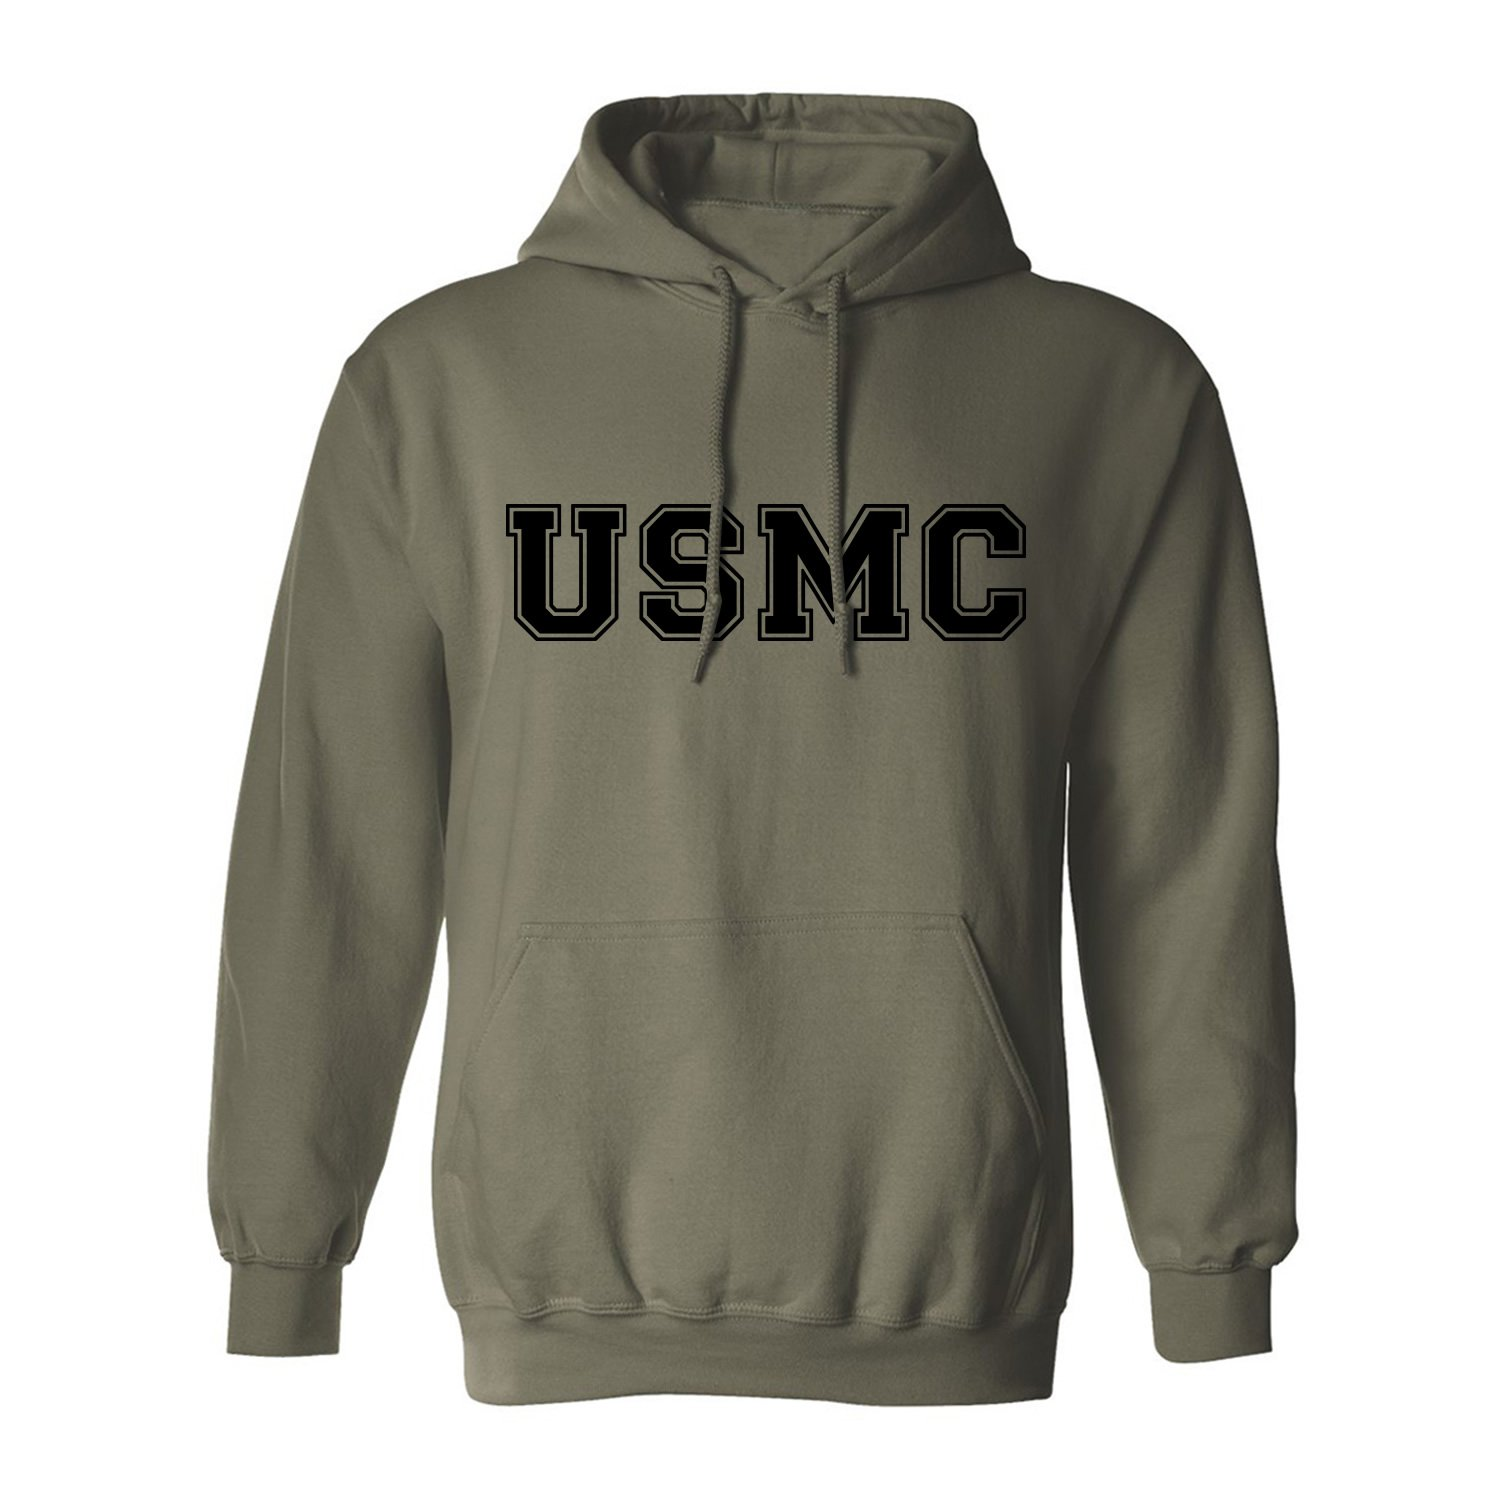 USMC Athletic Marines Hooded Sweatshirt in Military Green - XX-Large